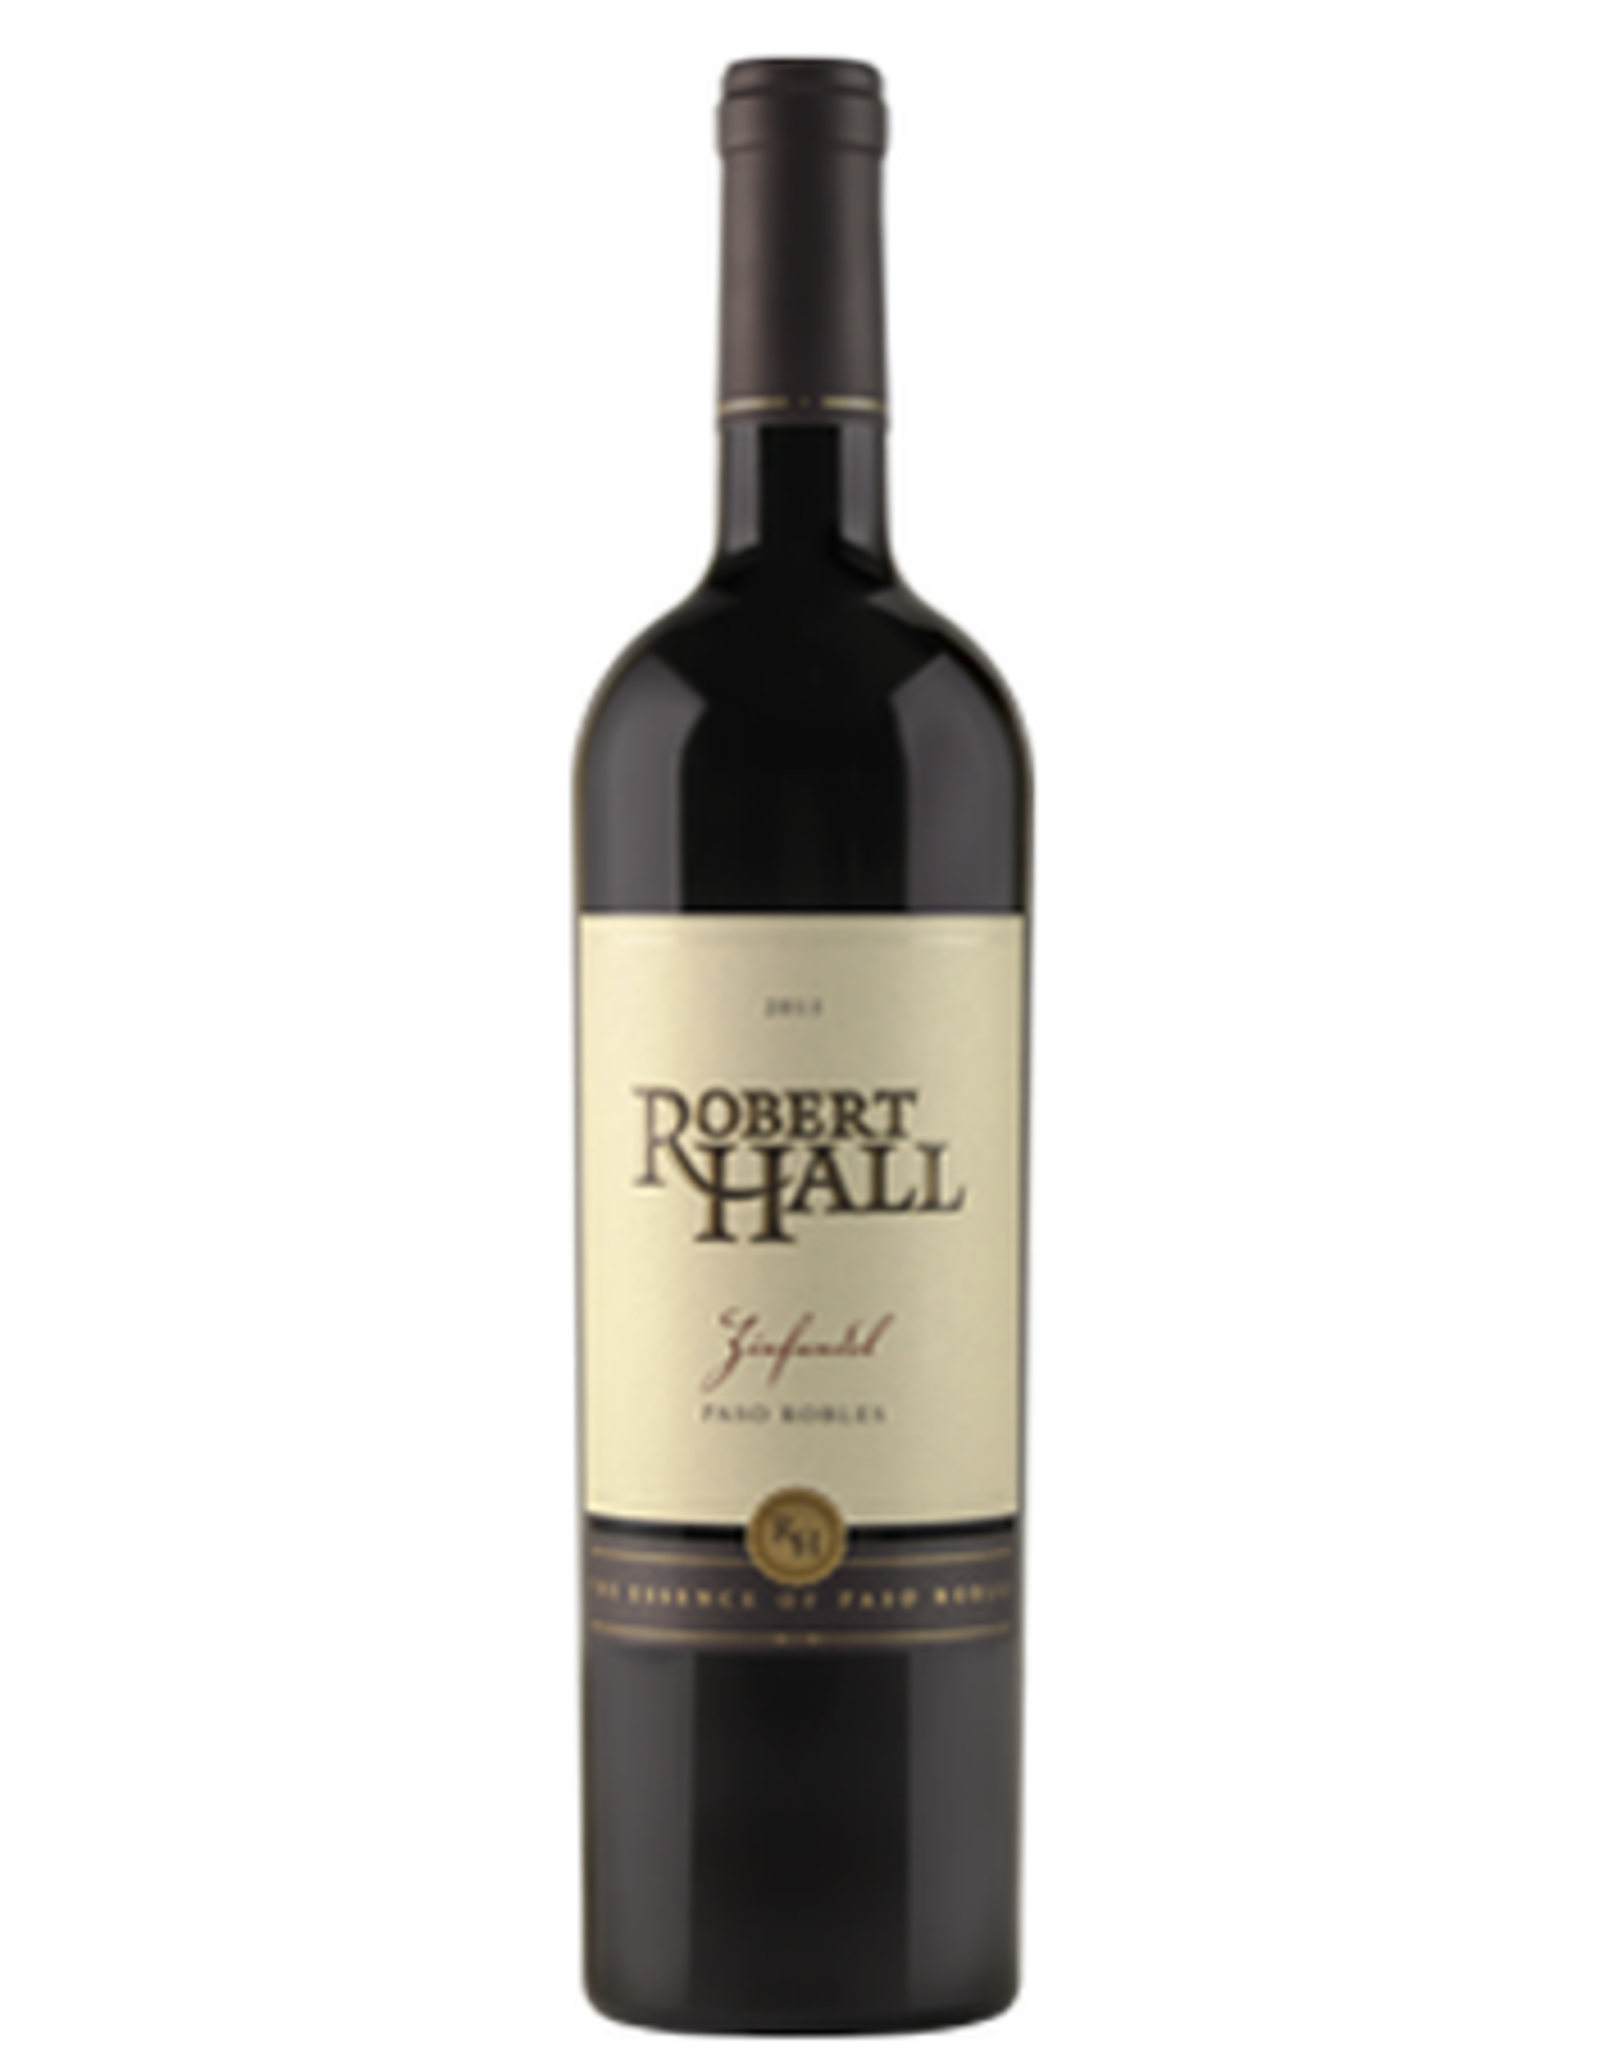 Robert Hall, Zinfandel 2015